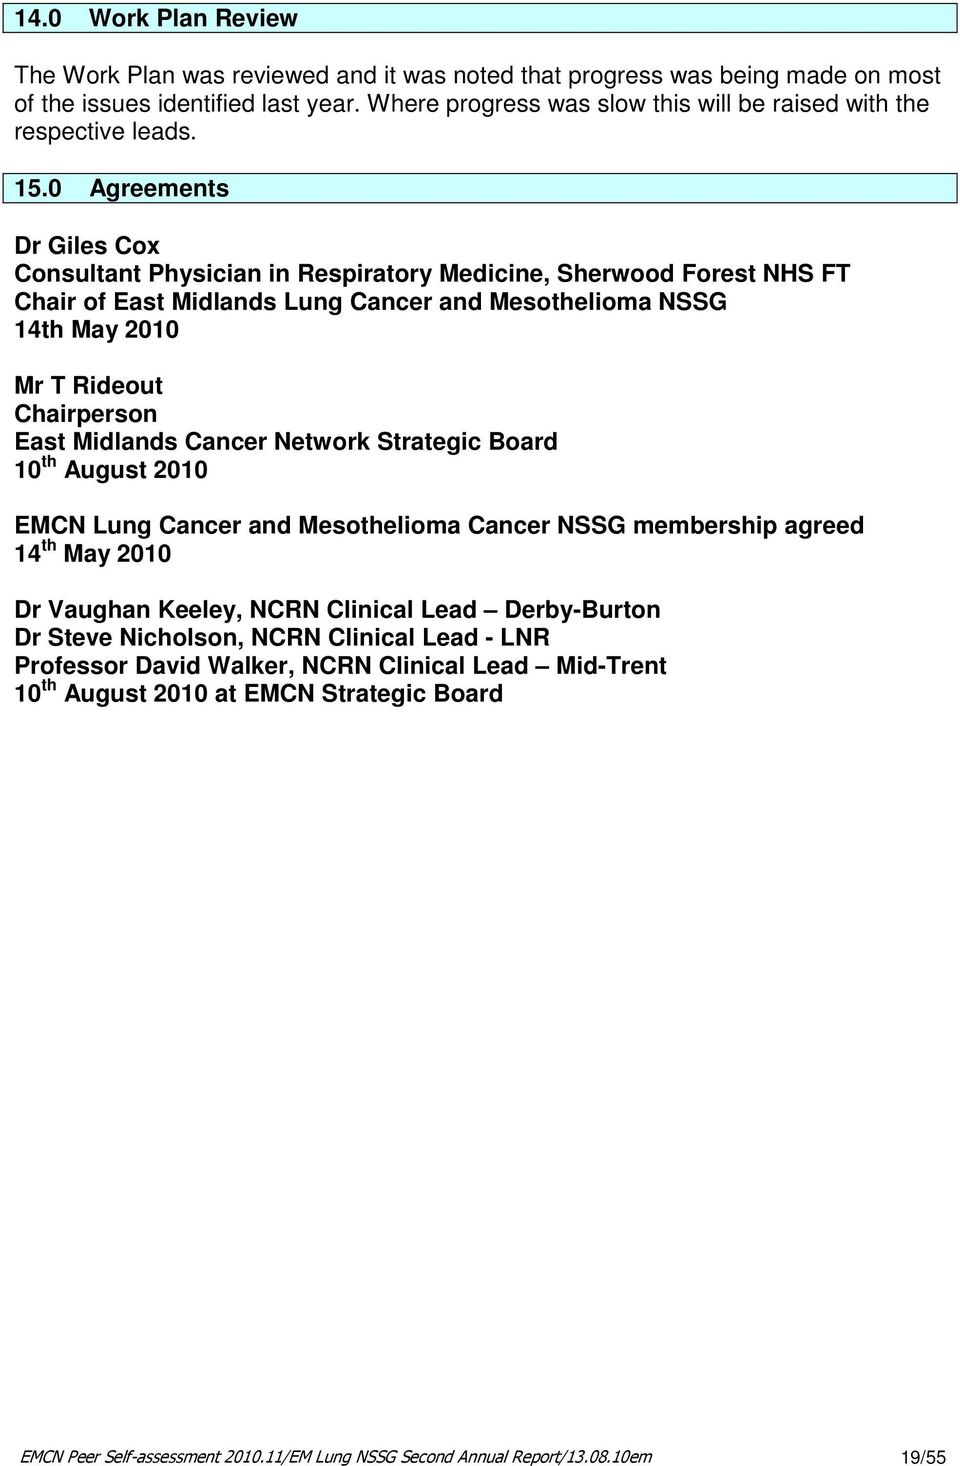 0 Agreements Dr Giles Cox Consultant Physician in Respiratory Medicine, Sherwood Forest NHS FT Chair of East Midlands Lung Cancer and Mesothelioma NSSG 14th May 2010 Mr T Rideout Chairperson East